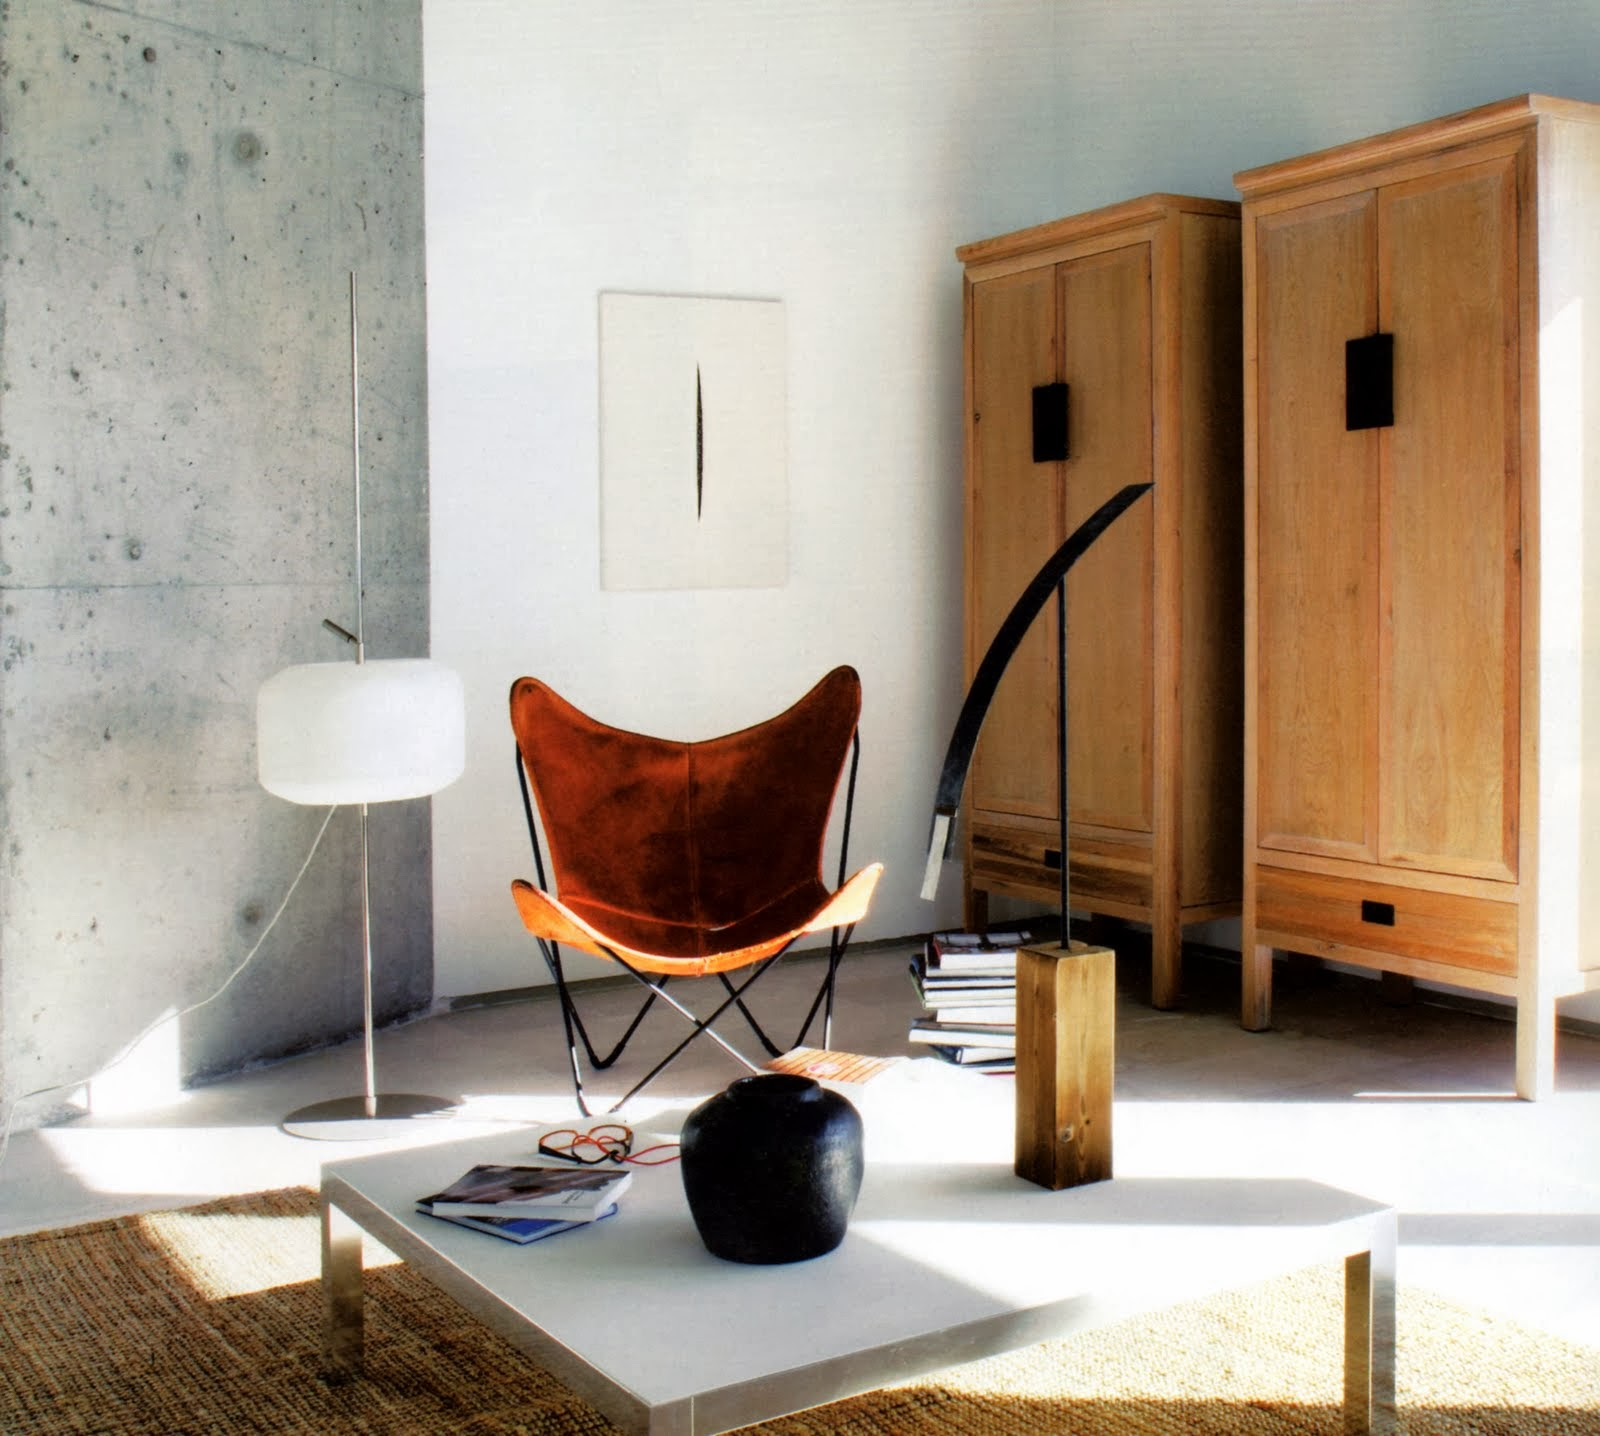 Trend hunter dec muebles orientales donde buscar for Muebles chinos outlet